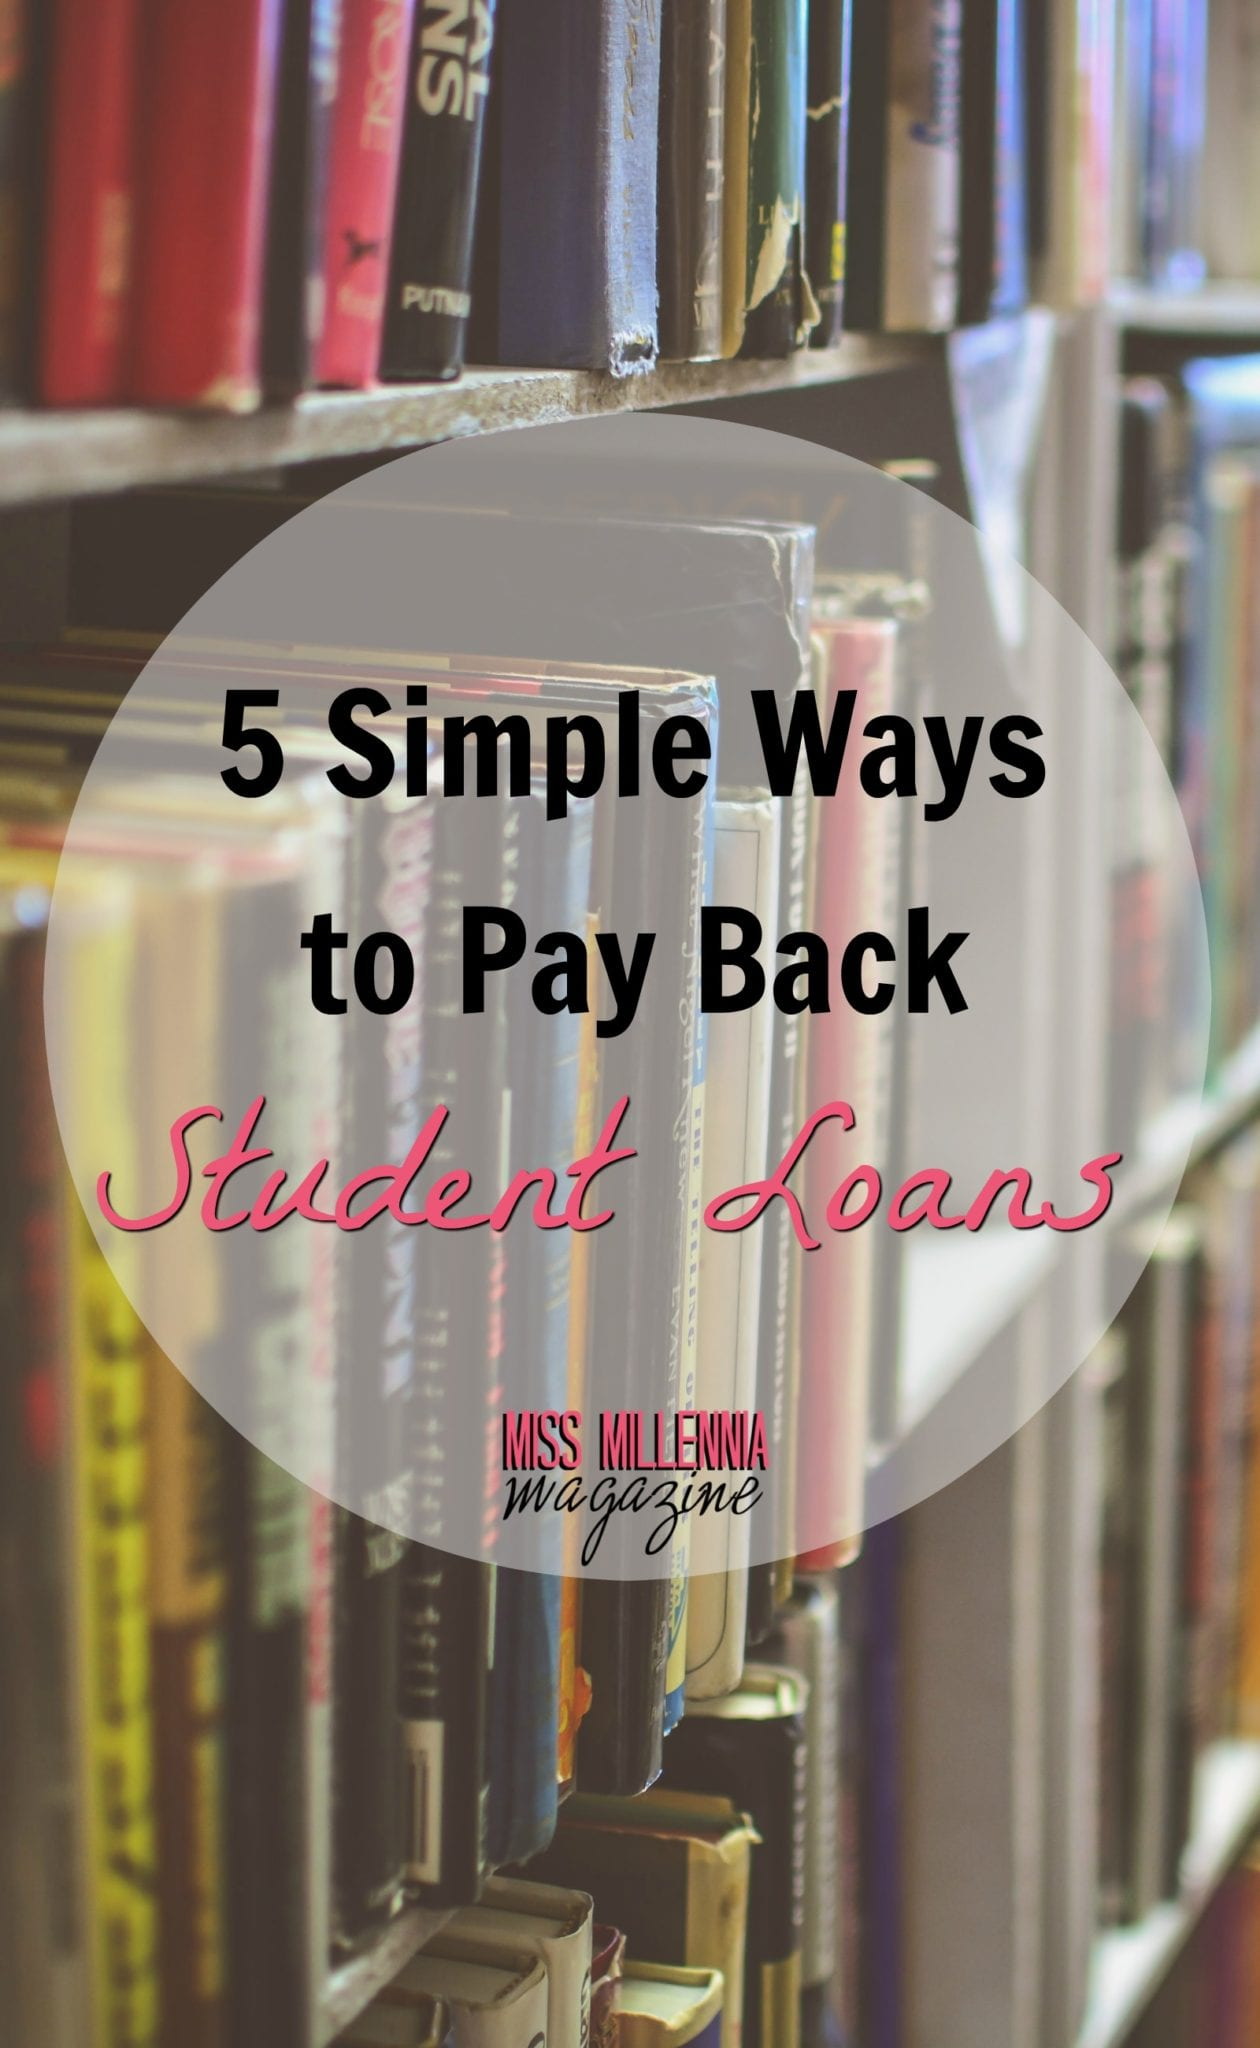 5-simple-ways-to-pay-back-student-loans